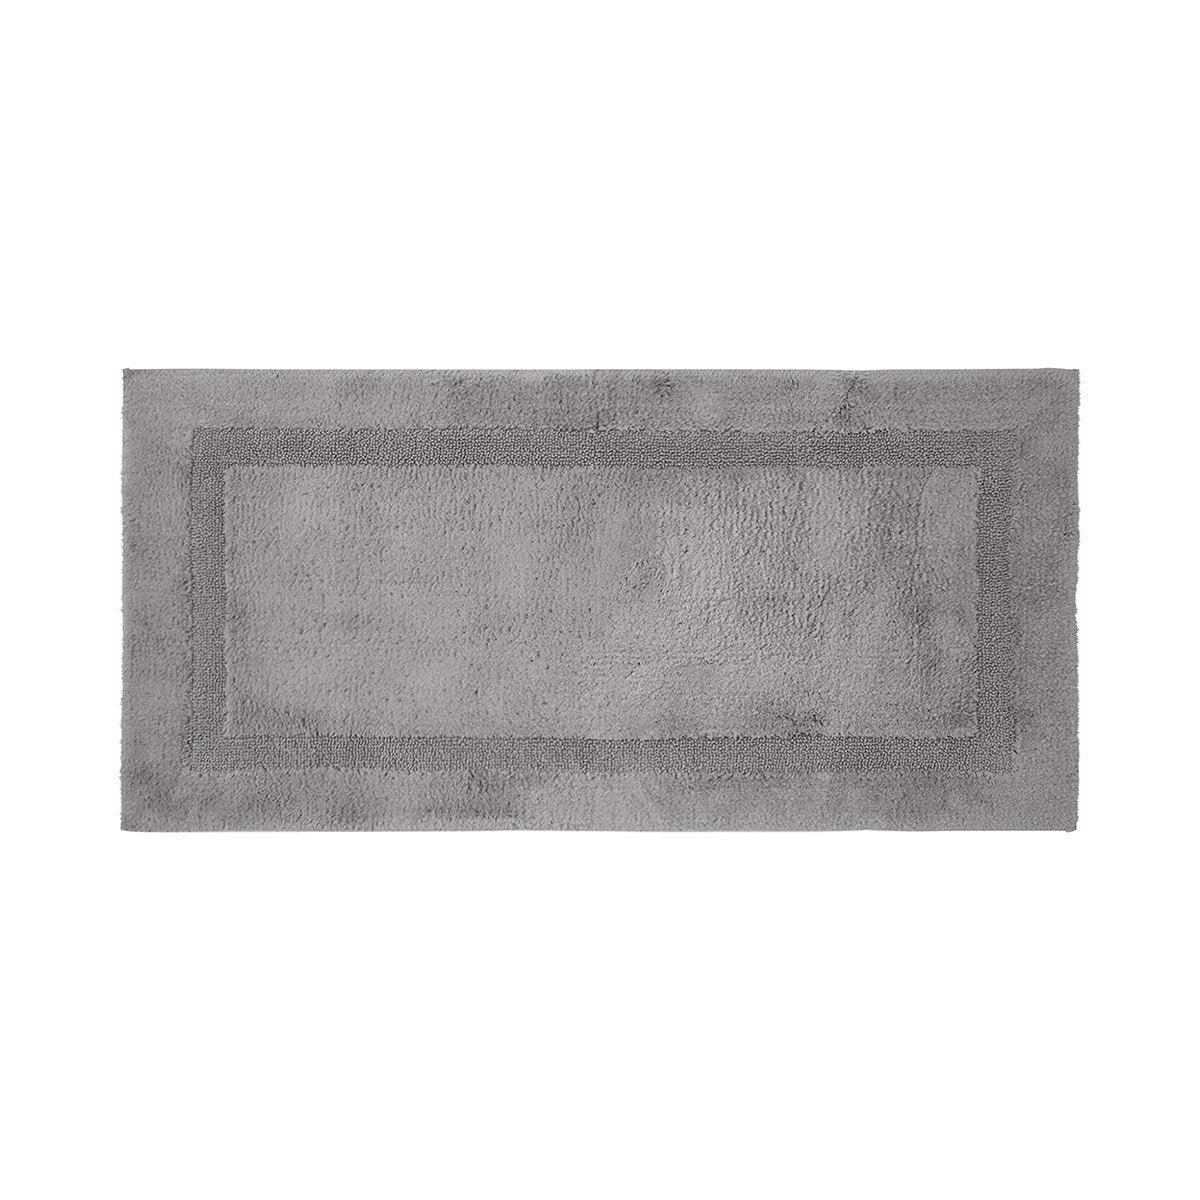 Aquilon Platine Reversible Bath Rug by Yves Delorme | Fig Linens - gray bath mat, rug